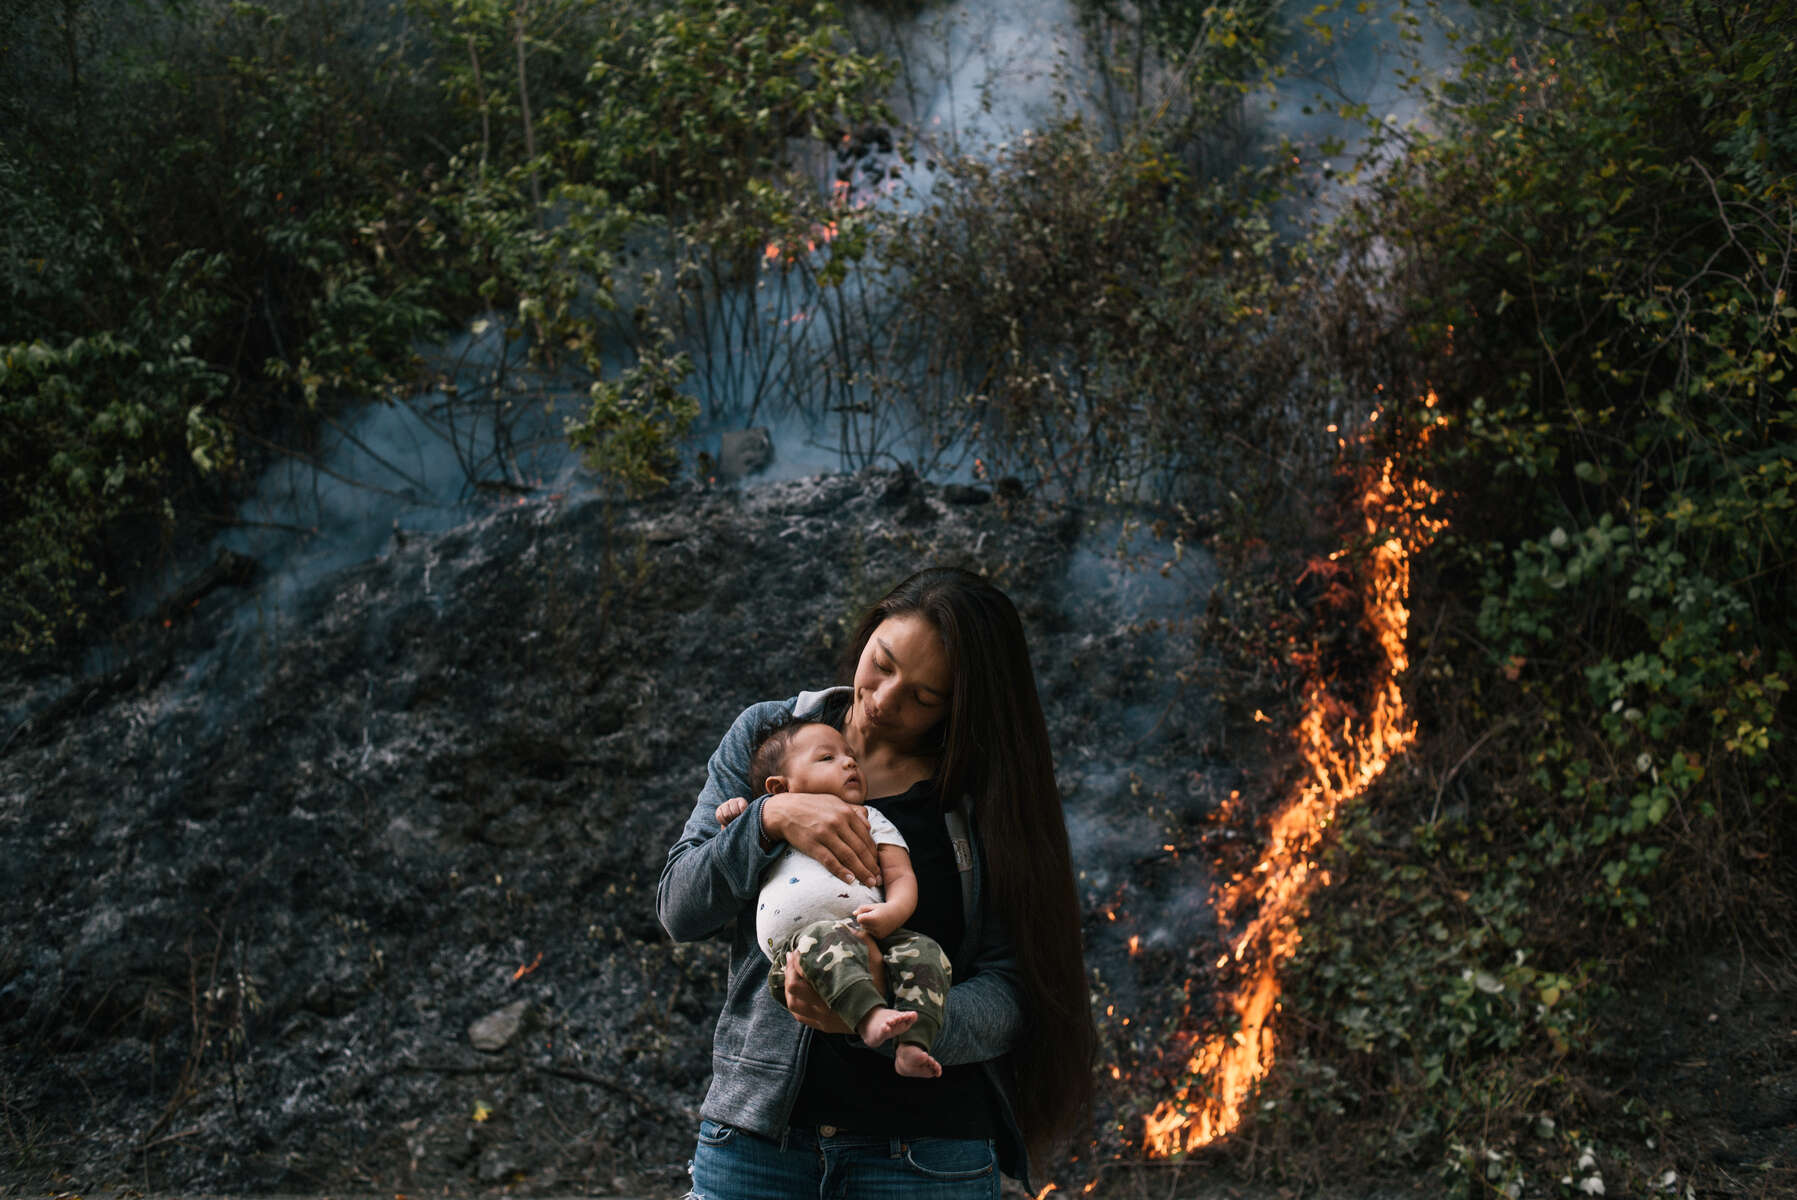 Crissy Robbins holds her son Kenneth Koy-o-woh during a prescribed cultural burn in Weitchpec, California. This twice-annual burn on Yurok land is part of a Cultural Fire Management Council training in which indigenous fire practitioners share traditional and modern knowledge with firefighters from around the world. In a recent survey, the Yurok community identified bringing fire back to the land as their top priority.For millennia, indigenous people in California and worldwide burned their land to promote food security, renew cultural and medicinal resources, create animal habitat and control larger fire risk—until colonizers made these methods illegal. Now increasingly devastating wildfires have government agencies reconsidering the use of prescribed burning as a preventative measure, and looking to traditional knowledge to guide some of their policies. Meanwhile, the Yurok and other tribes are working to revive their fire culture and reclaim their right to burn on sovereign land.